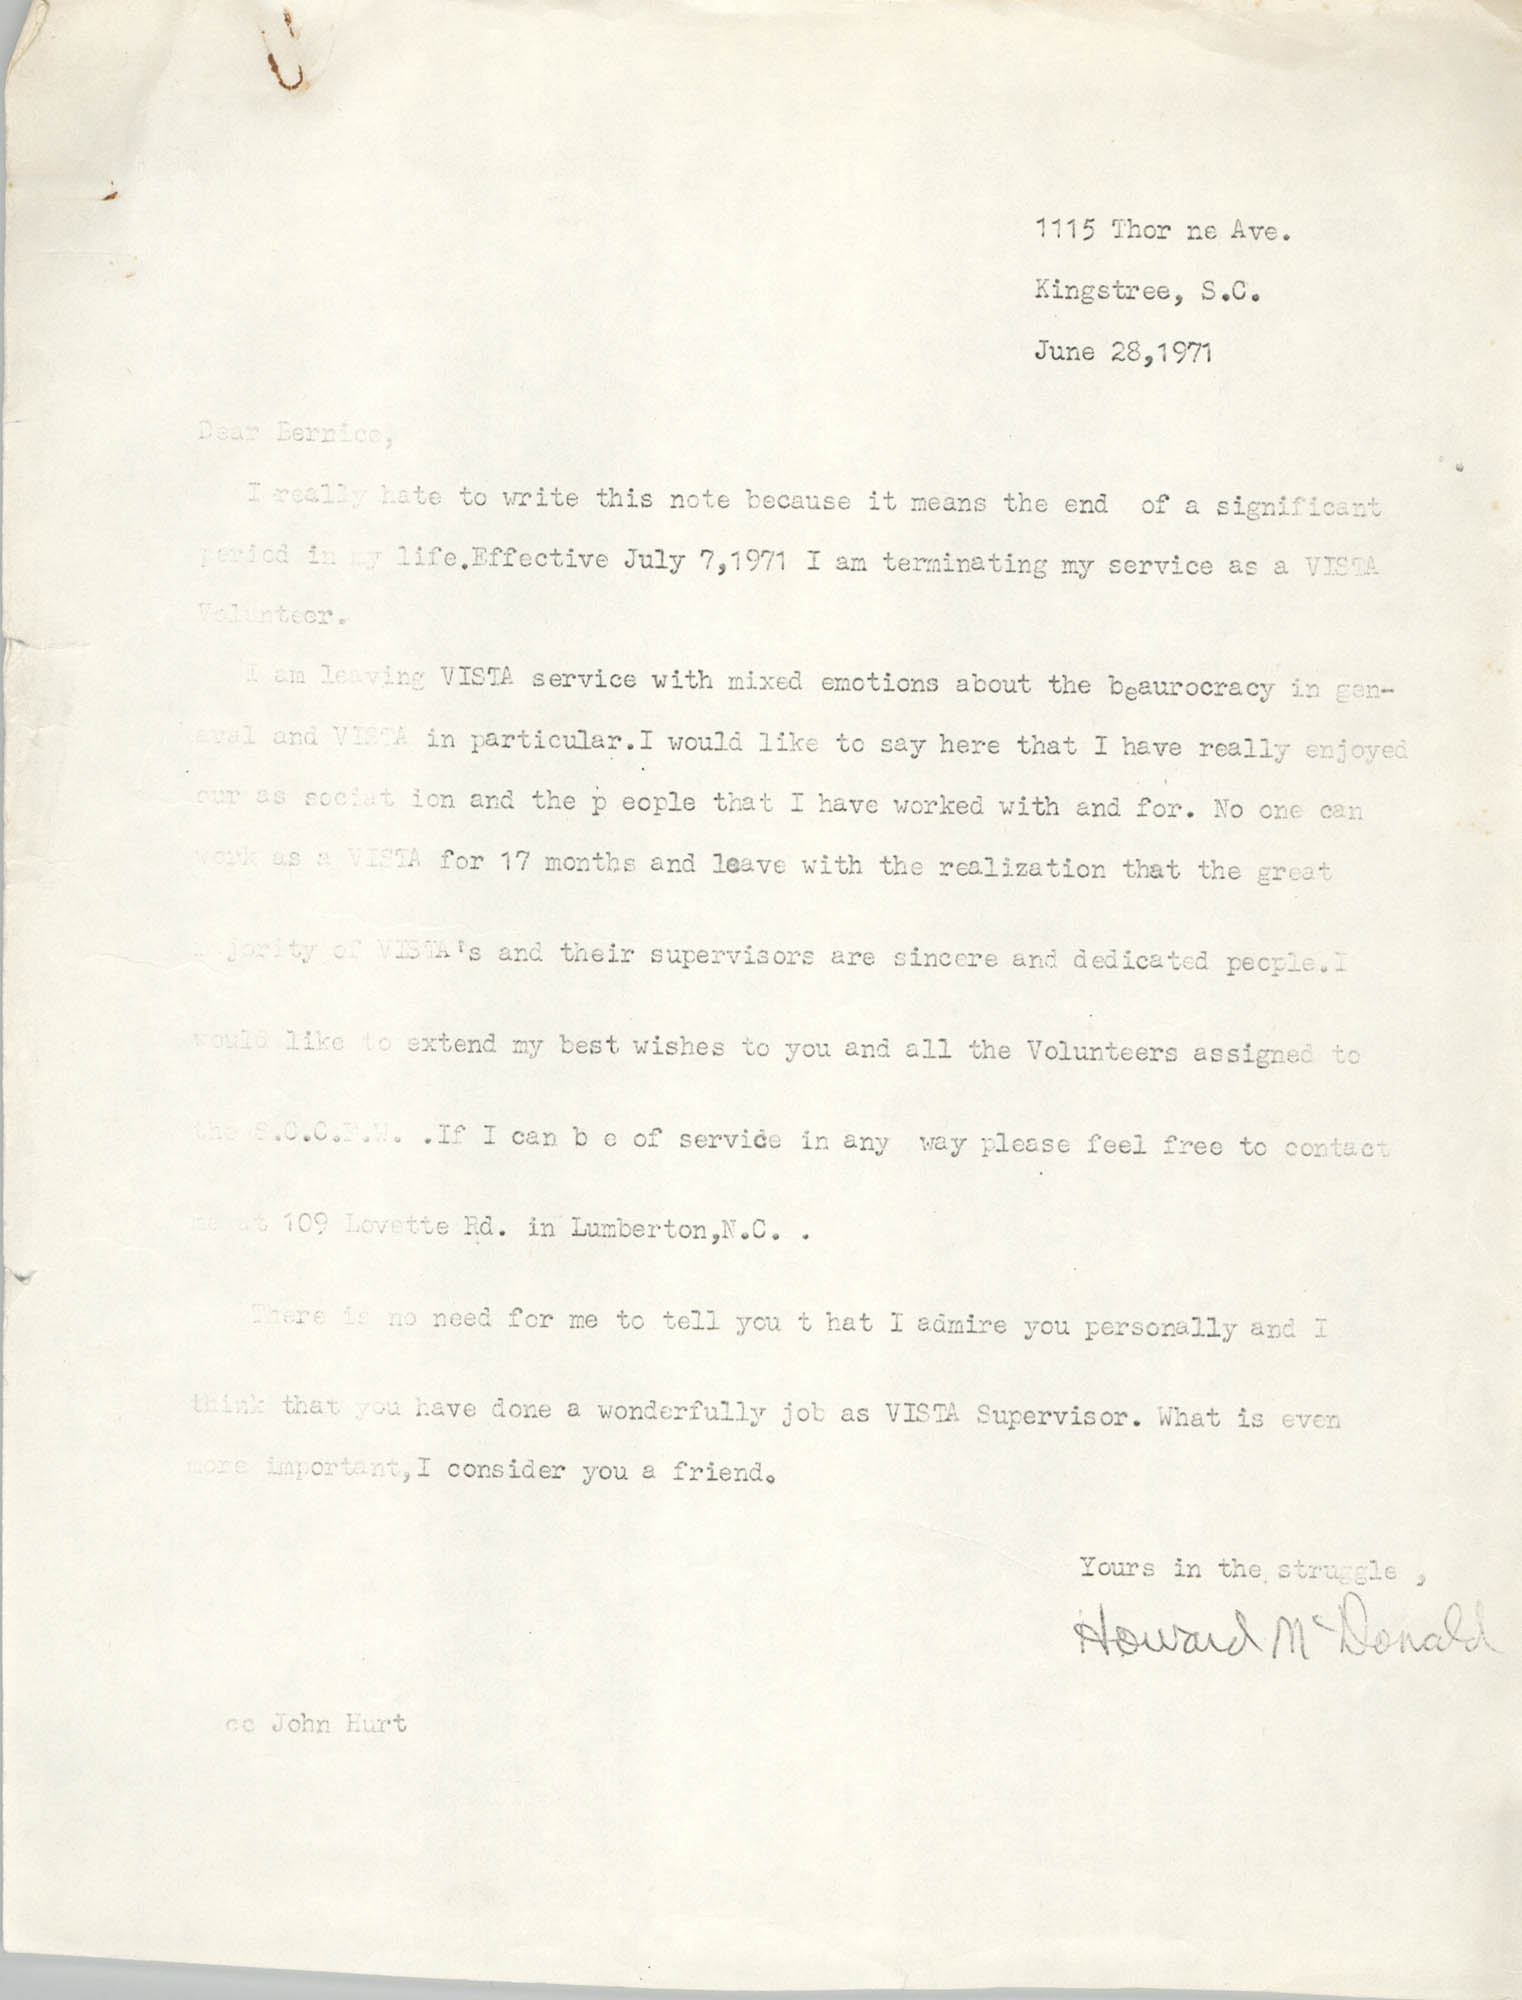 Letter from Howard McDonald to Bernice Robinson, June 28, 1971